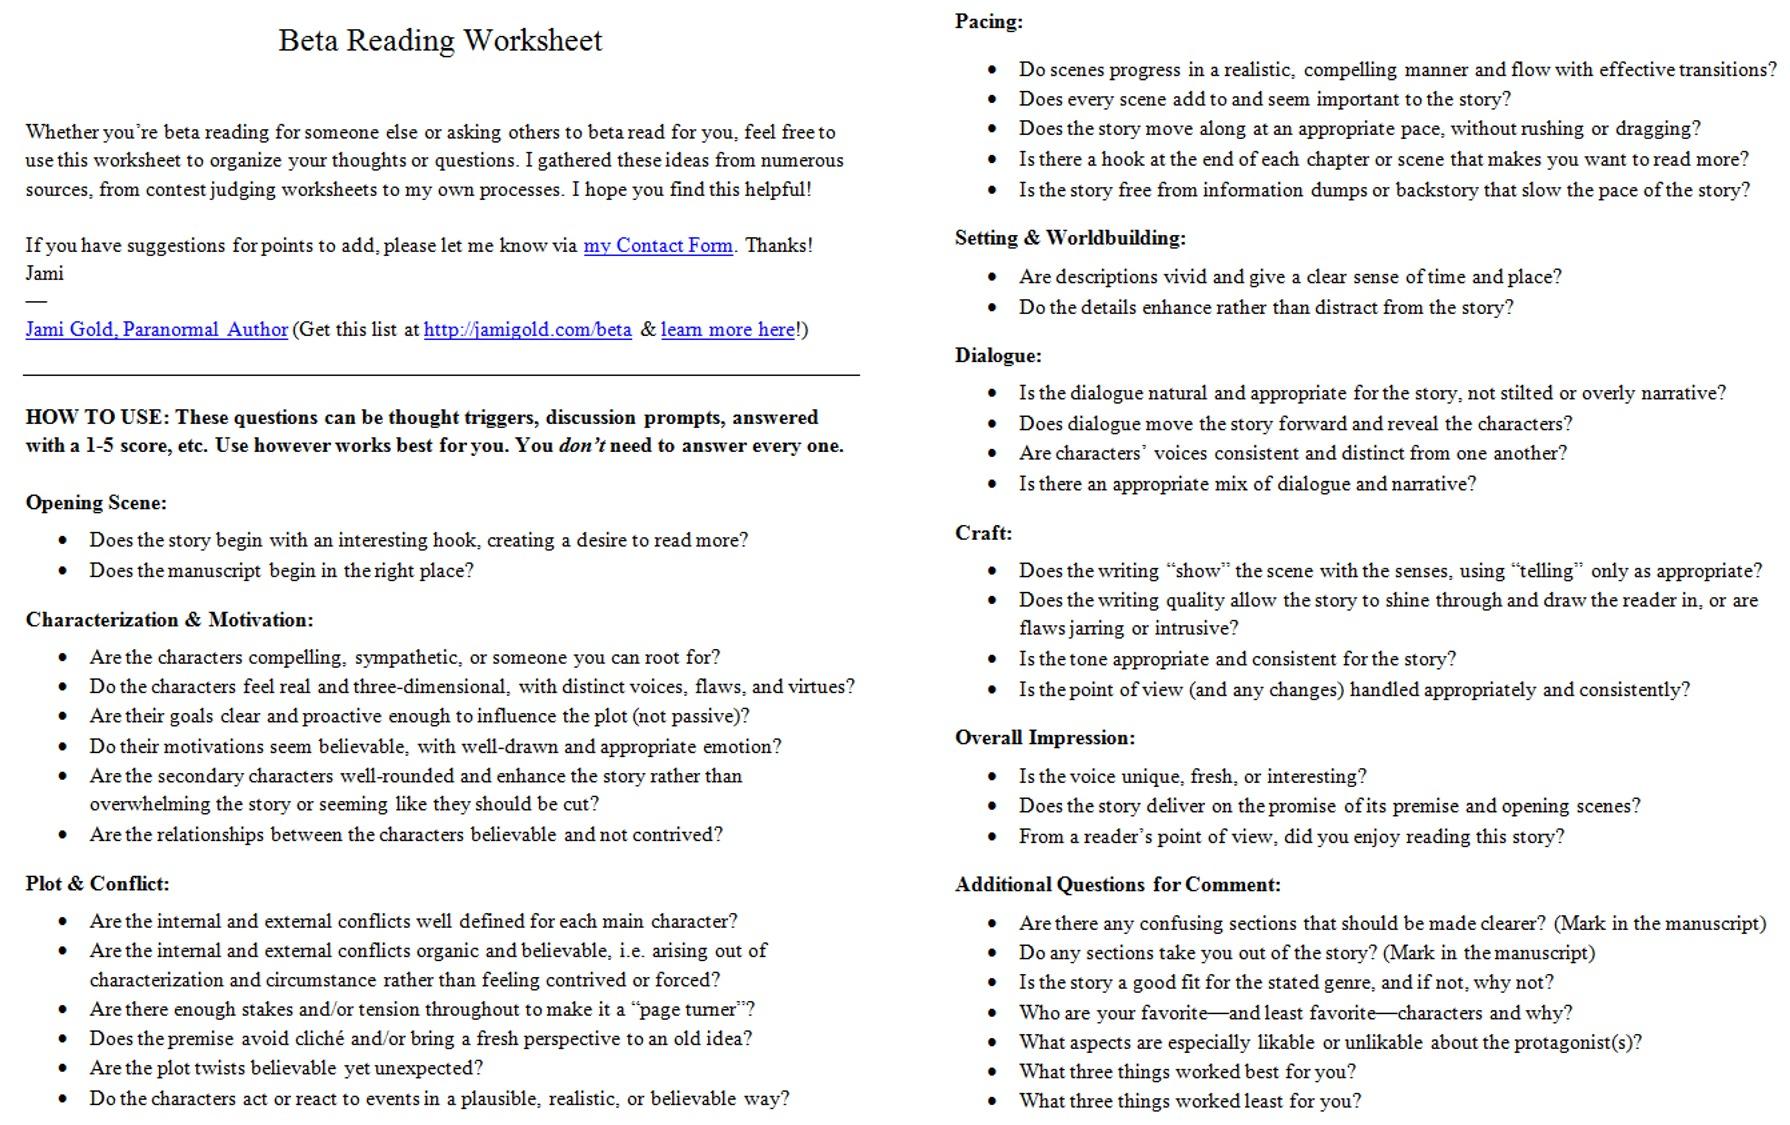 Proatmealus  Splendid Worksheets For Writers  Jami Gold Paranormal Author With Fair Screen Shot Of The Twopage Beta Reading Worksheet With Astounding Earth Seasons Worksheet Also Binary Molecular Nomenclature Worksheet Answers In Addition  States Printable Worksheets And Home Renovation Budget Worksheet As Well As Worksheets For Sixth Graders Additionally Converting In The Metric System Worksheet From Jamigoldcom With Proatmealus  Fair Worksheets For Writers  Jami Gold Paranormal Author With Astounding Screen Shot Of The Twopage Beta Reading Worksheet And Splendid Earth Seasons Worksheet Also Binary Molecular Nomenclature Worksheet Answers In Addition  States Printable Worksheets From Jamigoldcom